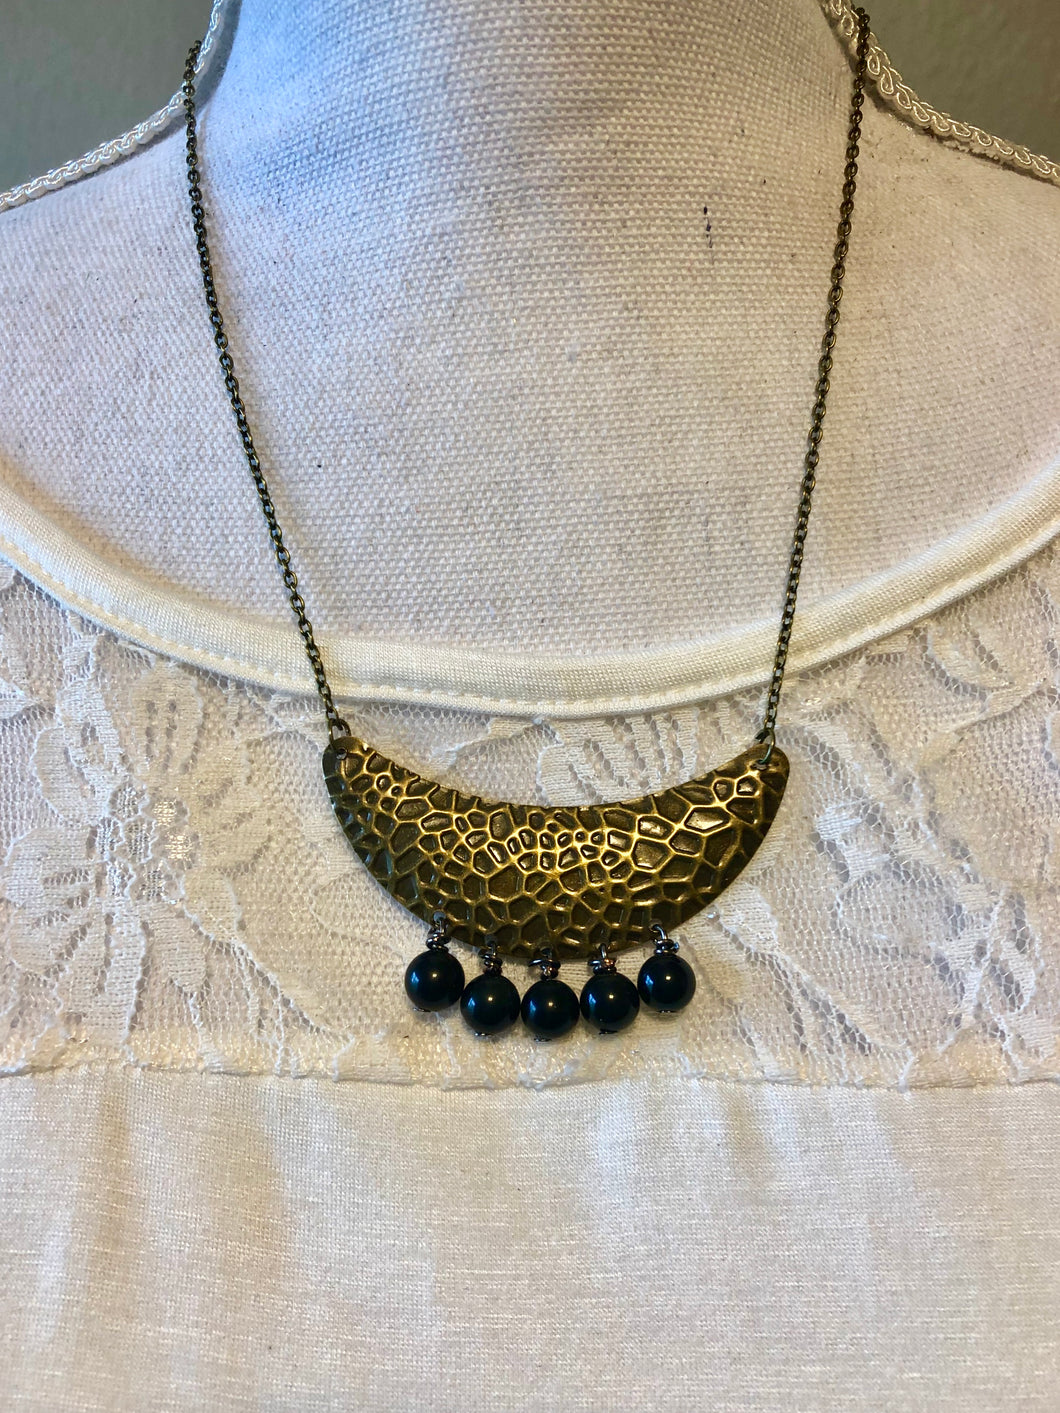 Small Hammered Bronze Bib gemstone necklace - 3 different gemstones